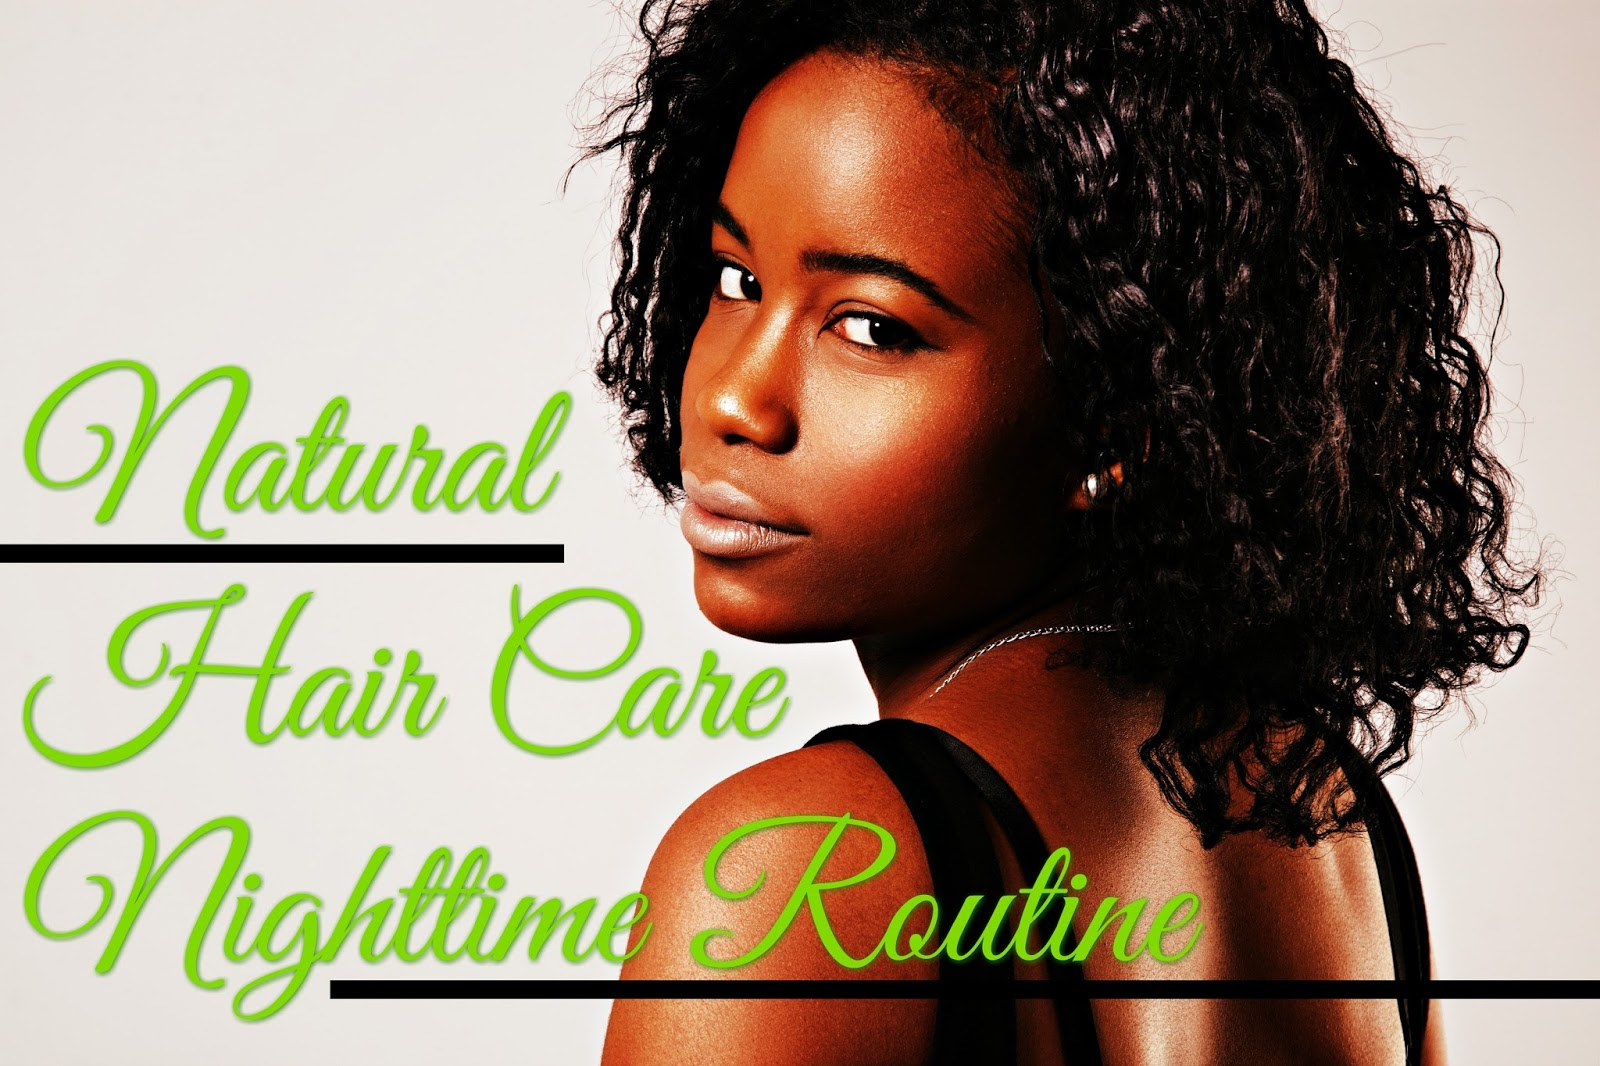 Natural Hair Care Nighttime Routine